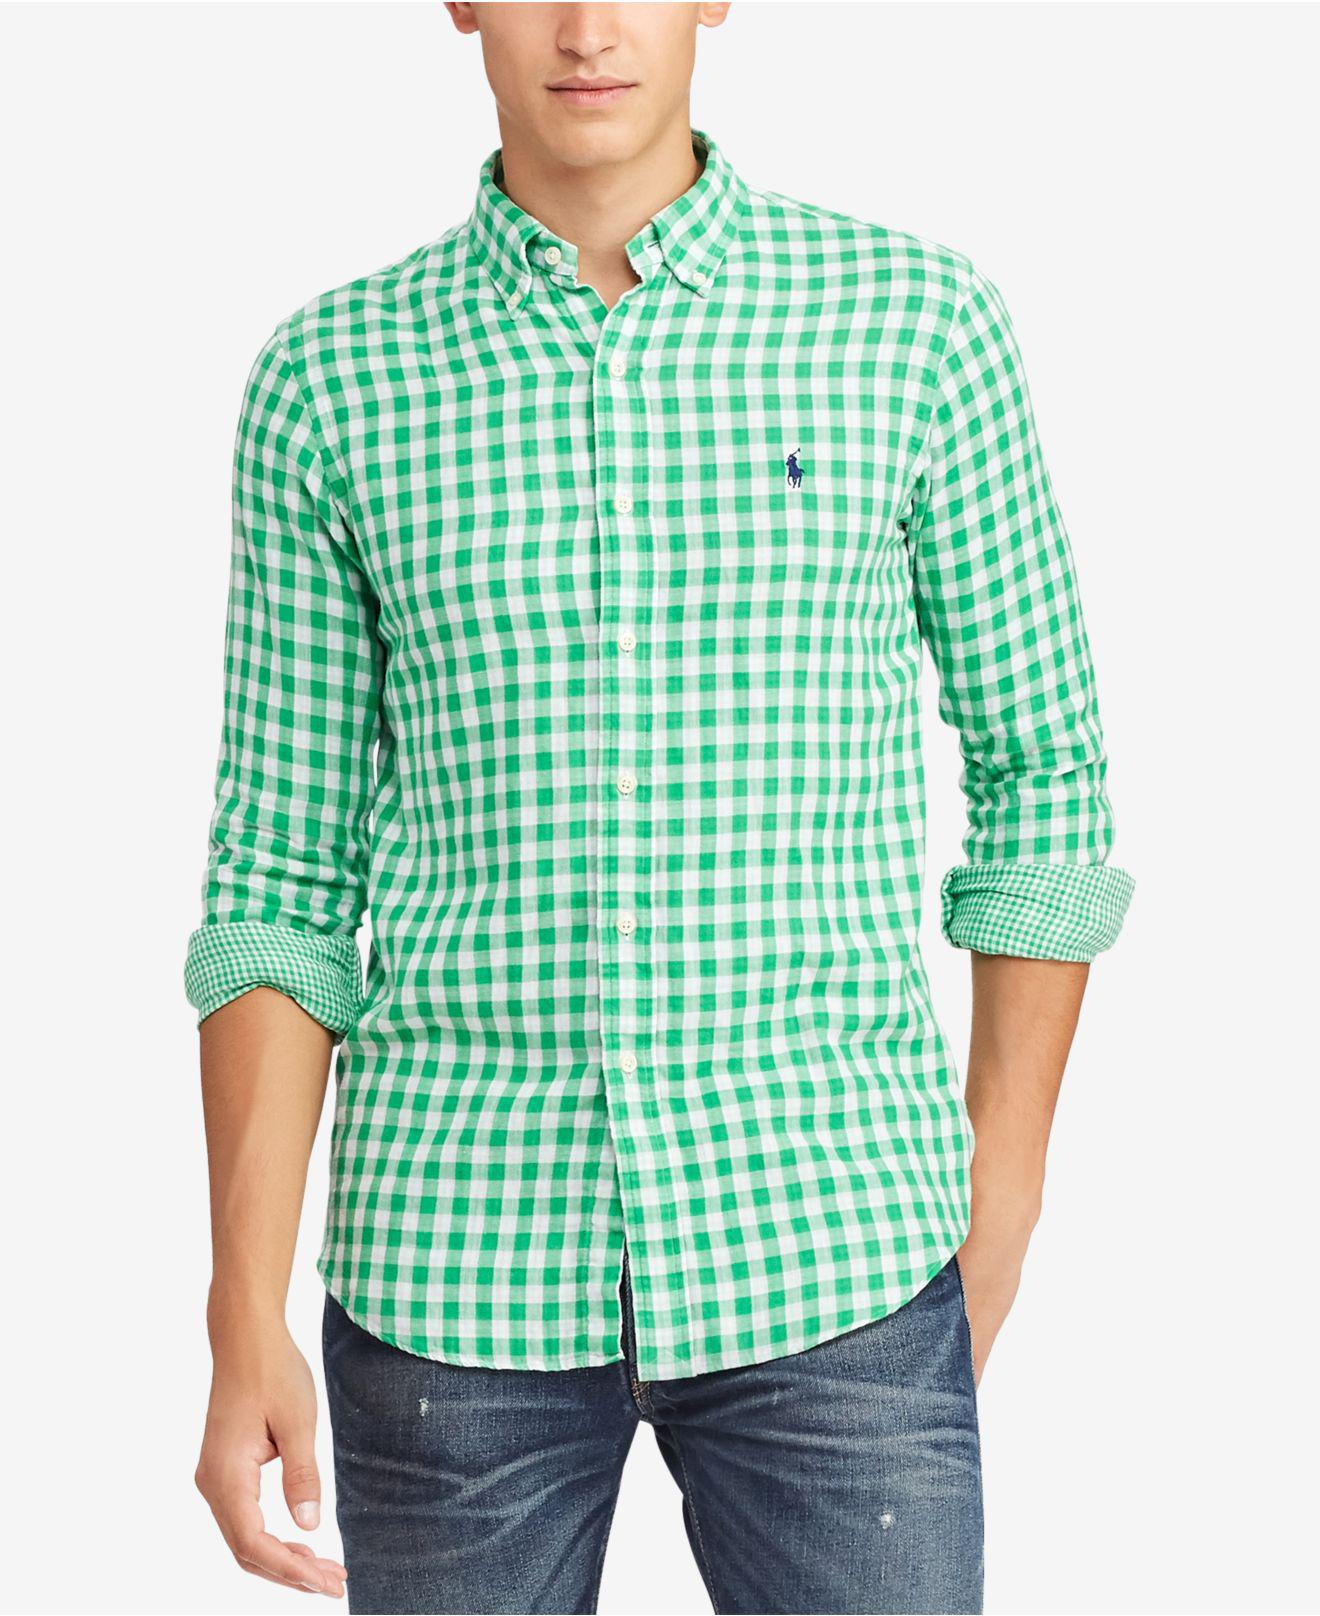 d62f304565d7 Lyst - Polo Ralph Lauren Gingham Classic Fit Button-down Shirt in ...